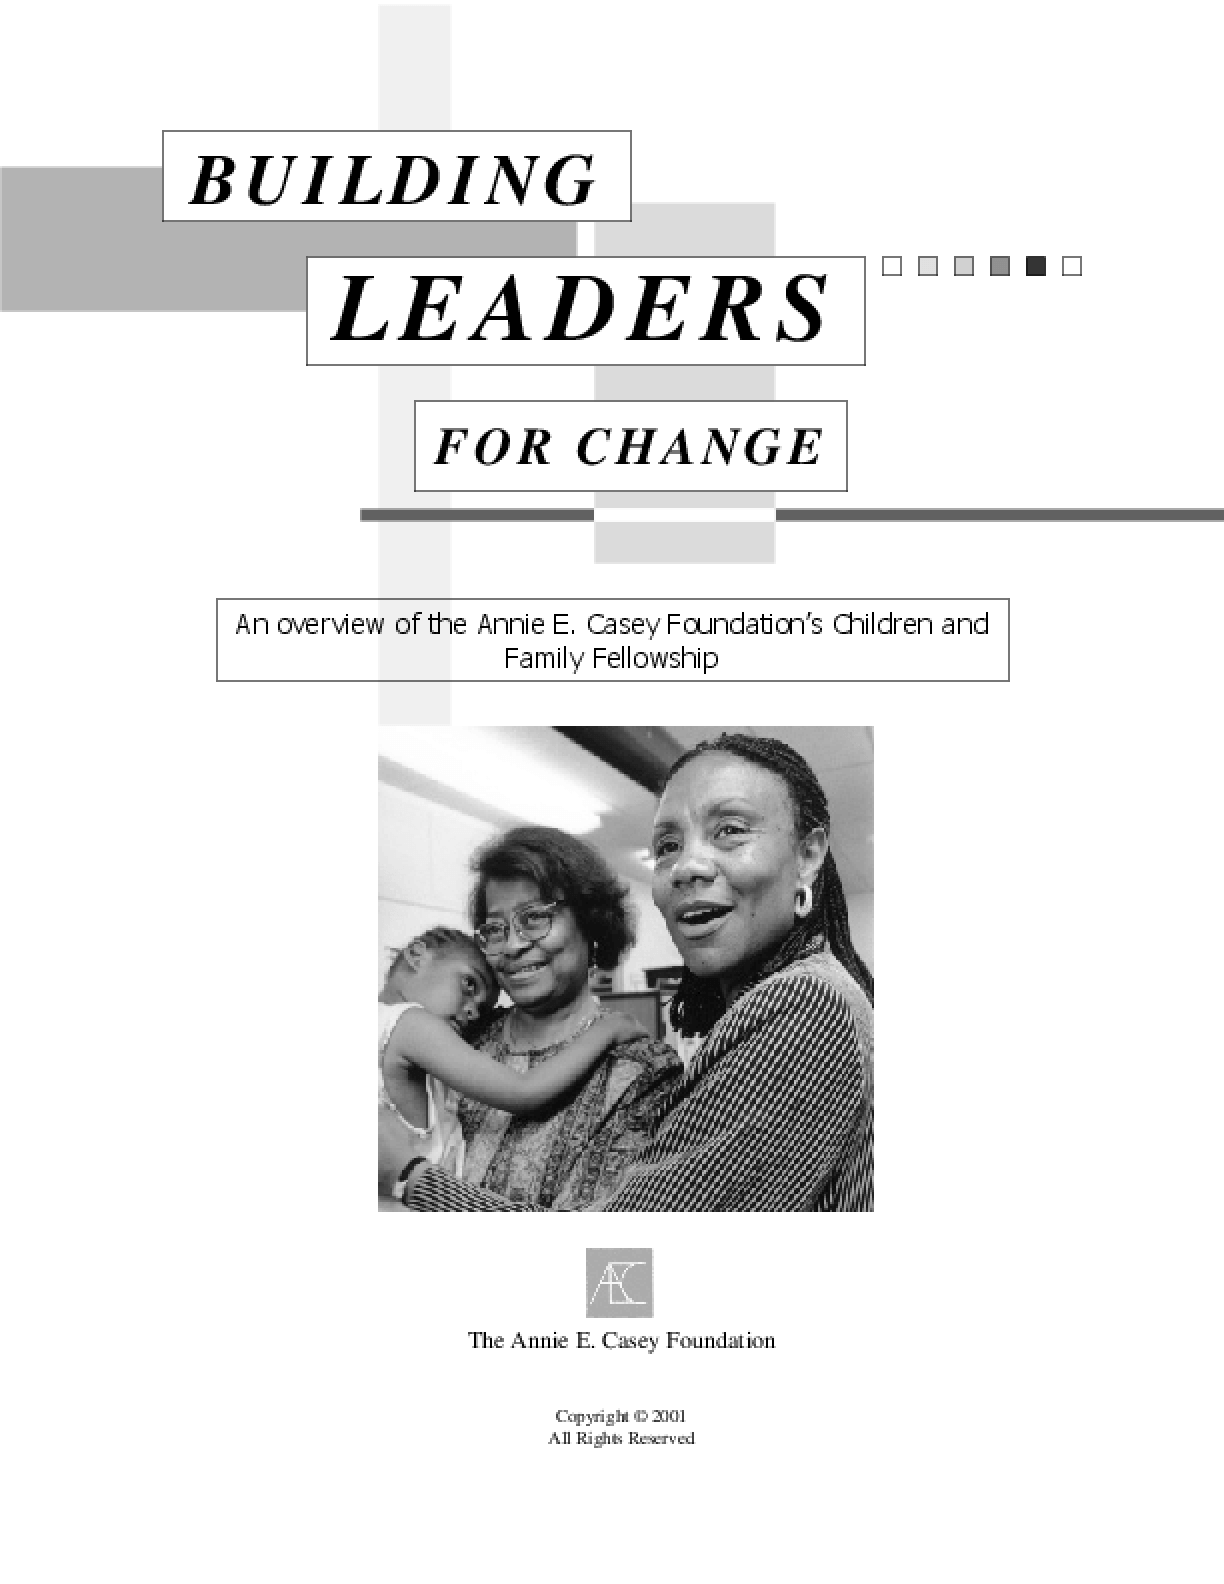 Building Leaders for Change